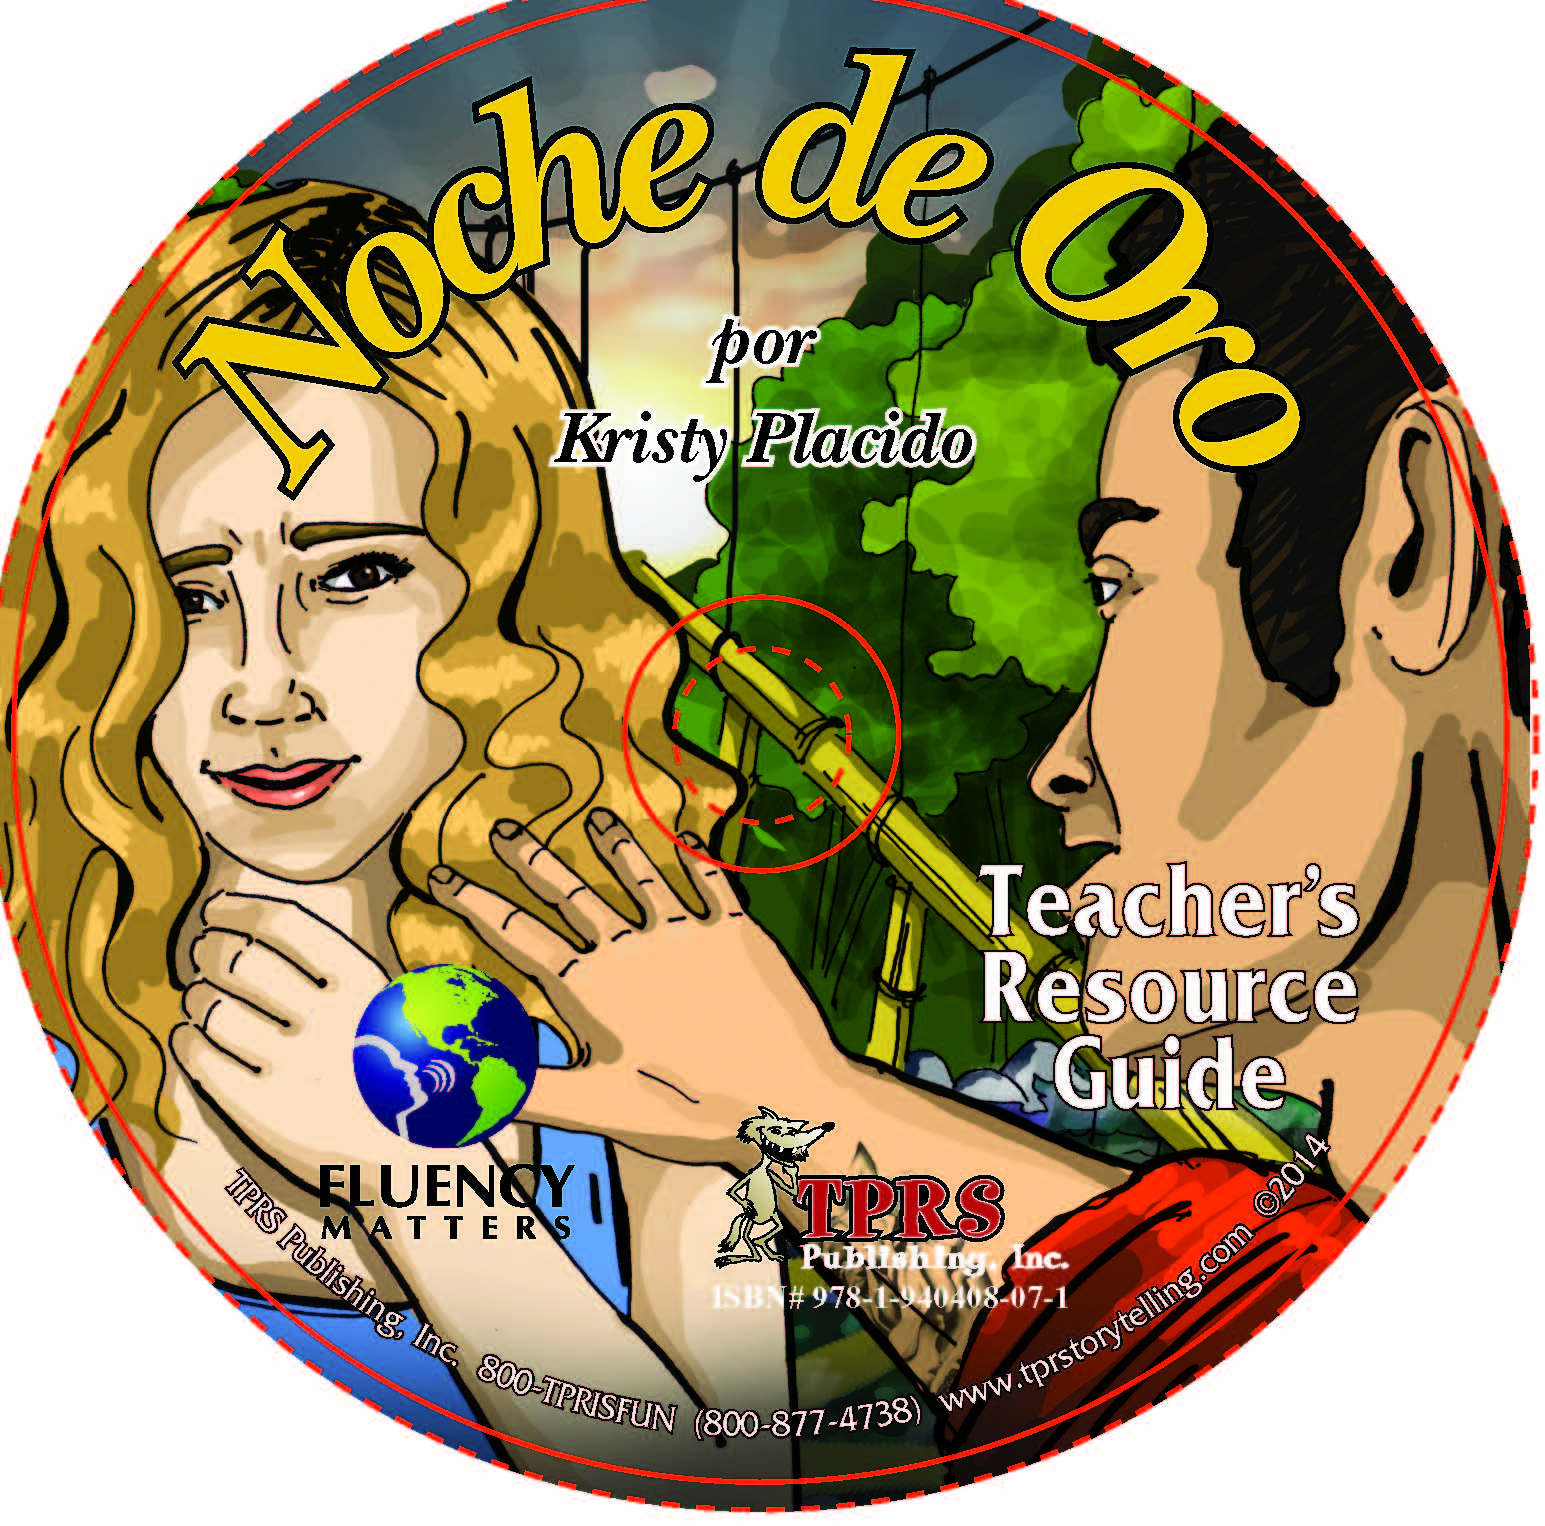 Noche de Oro – Teacher's Guide on CD